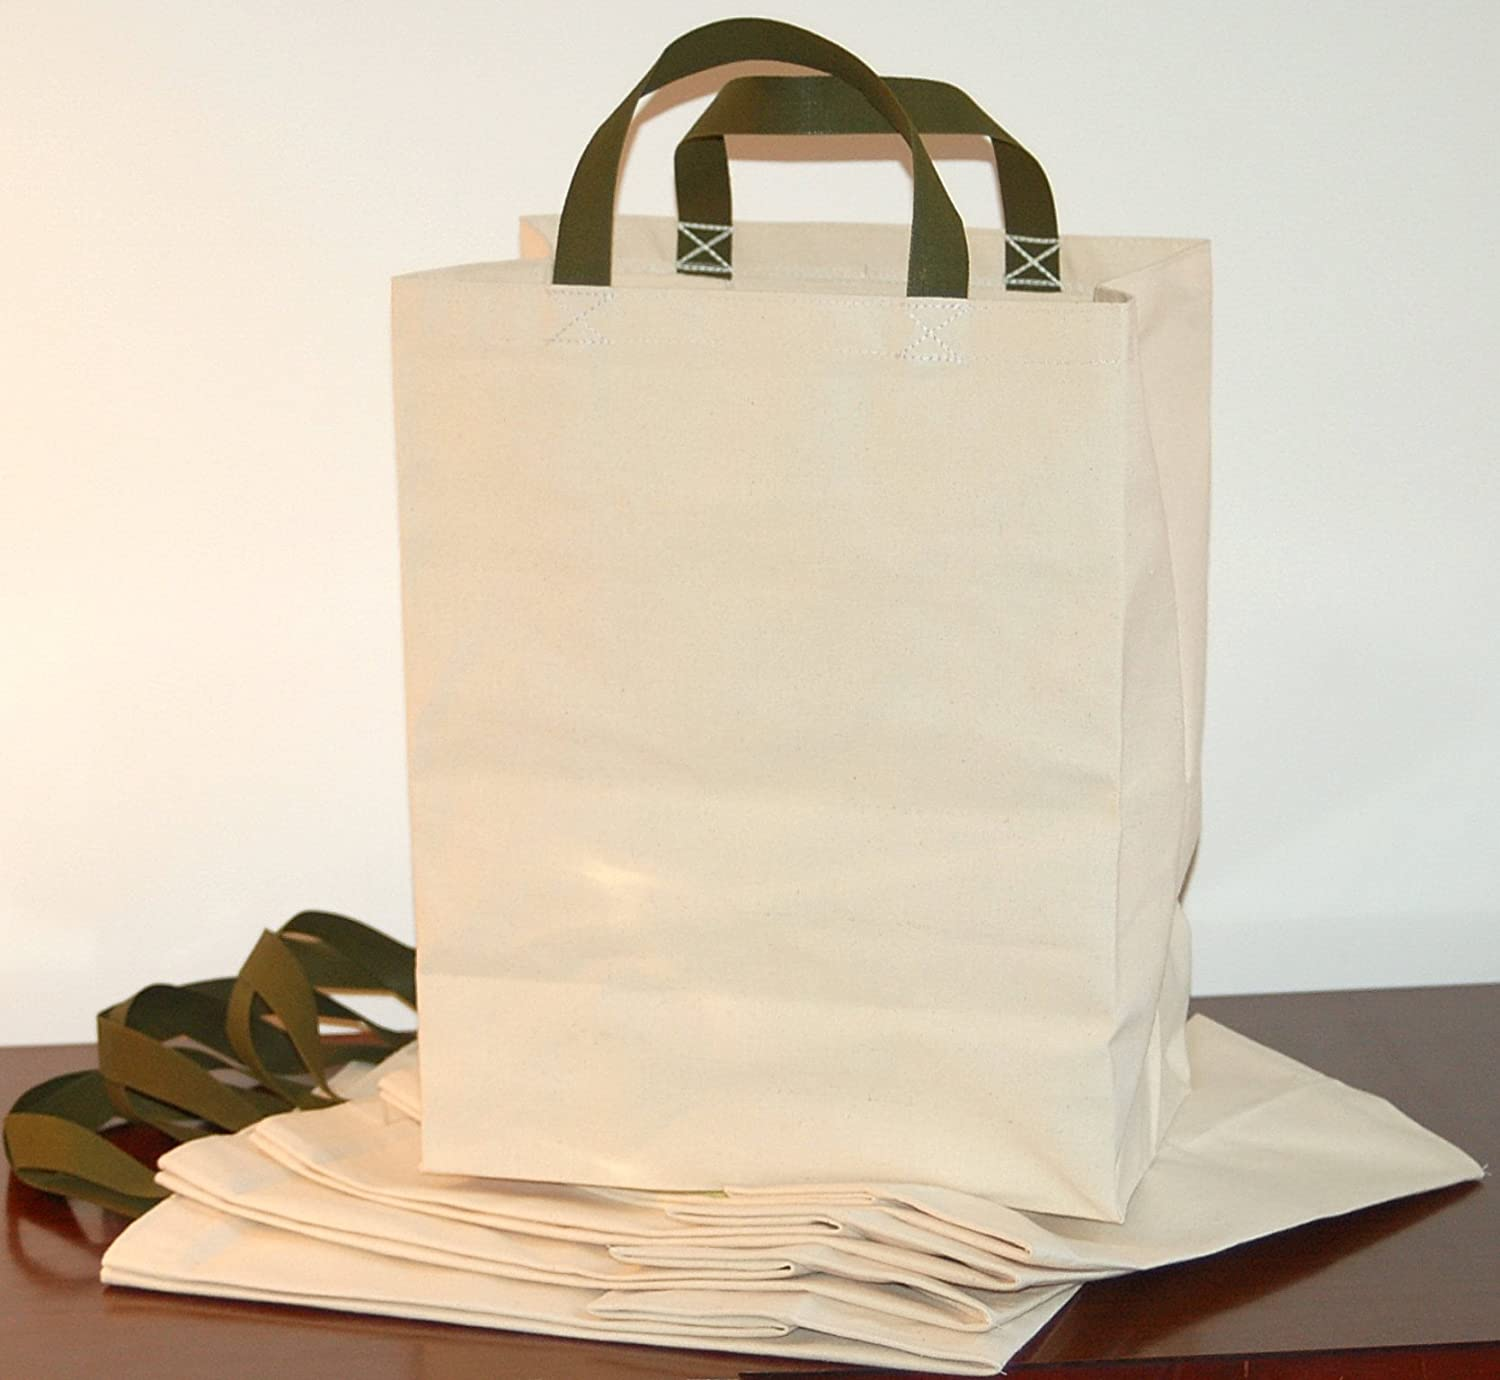 Amazon.com - Turtlecreek Cotton Canvas Reusable Grocery Tote Bags ...